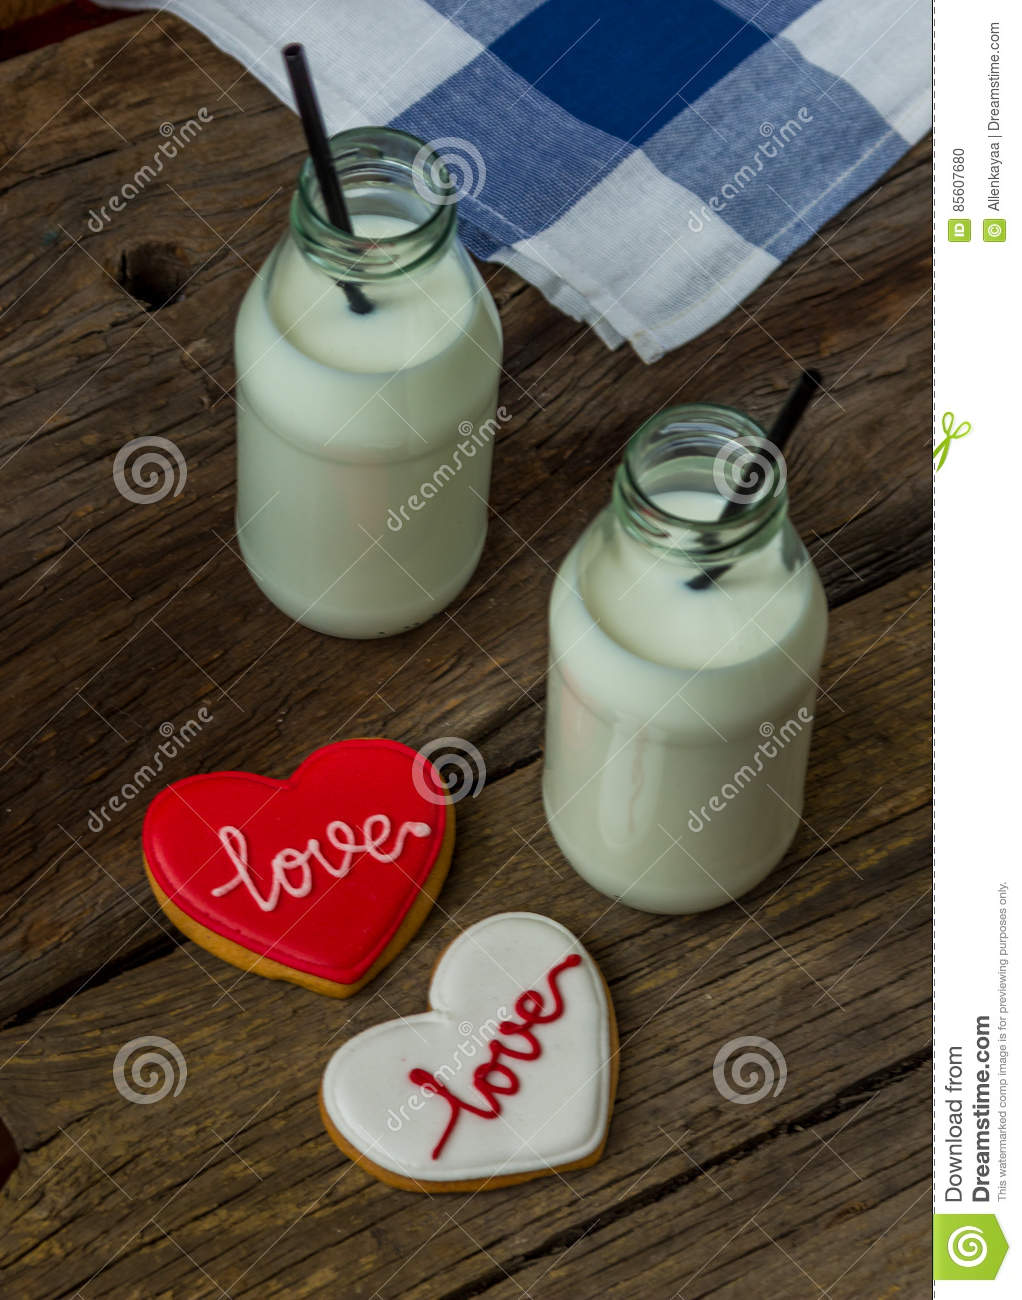 Valentine cookies and milk in a bottle on a wooden background